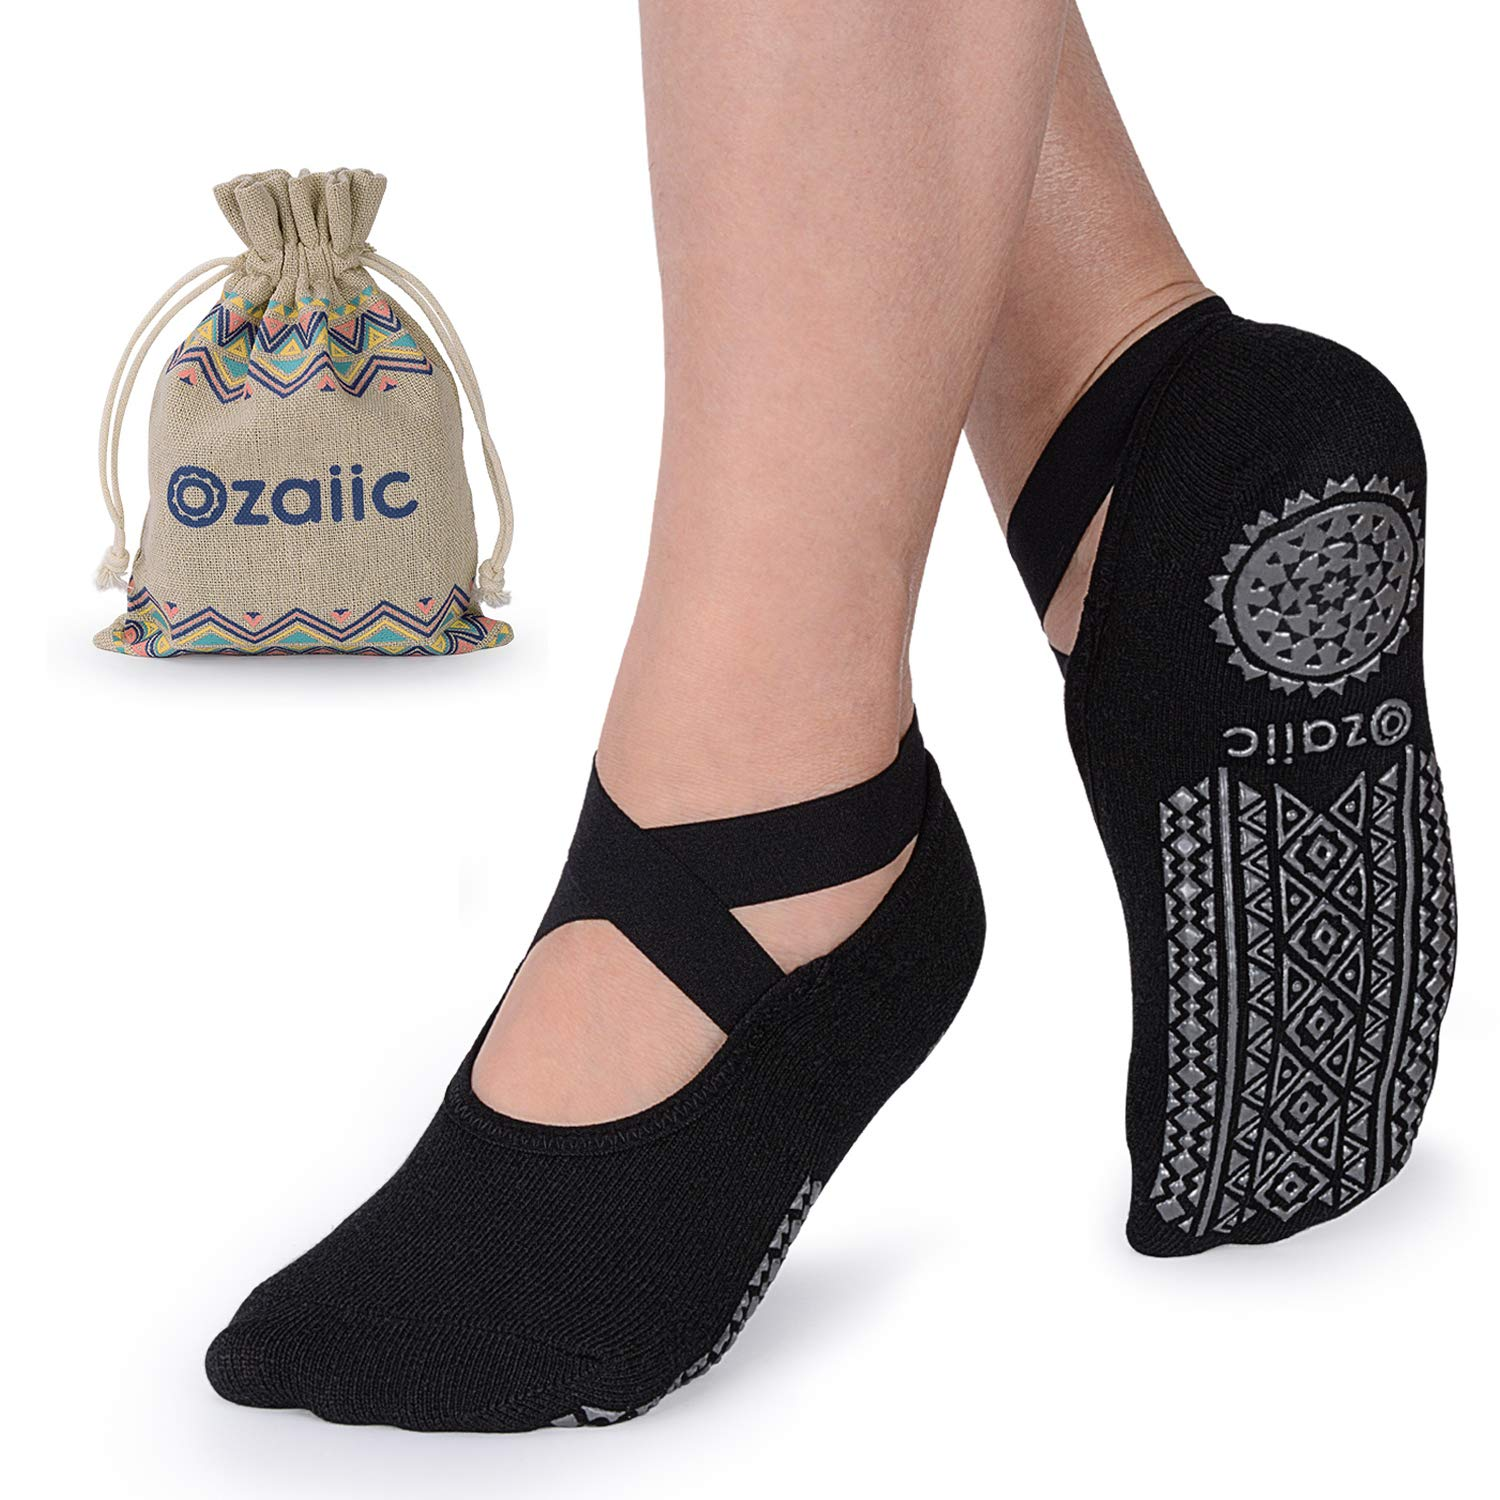 Yoga Socks for Women Non-Slip Grips & Straps, Ideal for Pilates, Pure Barre, Ballet, Dance, Barefoot Workout (Black, One size) by Ozaiic